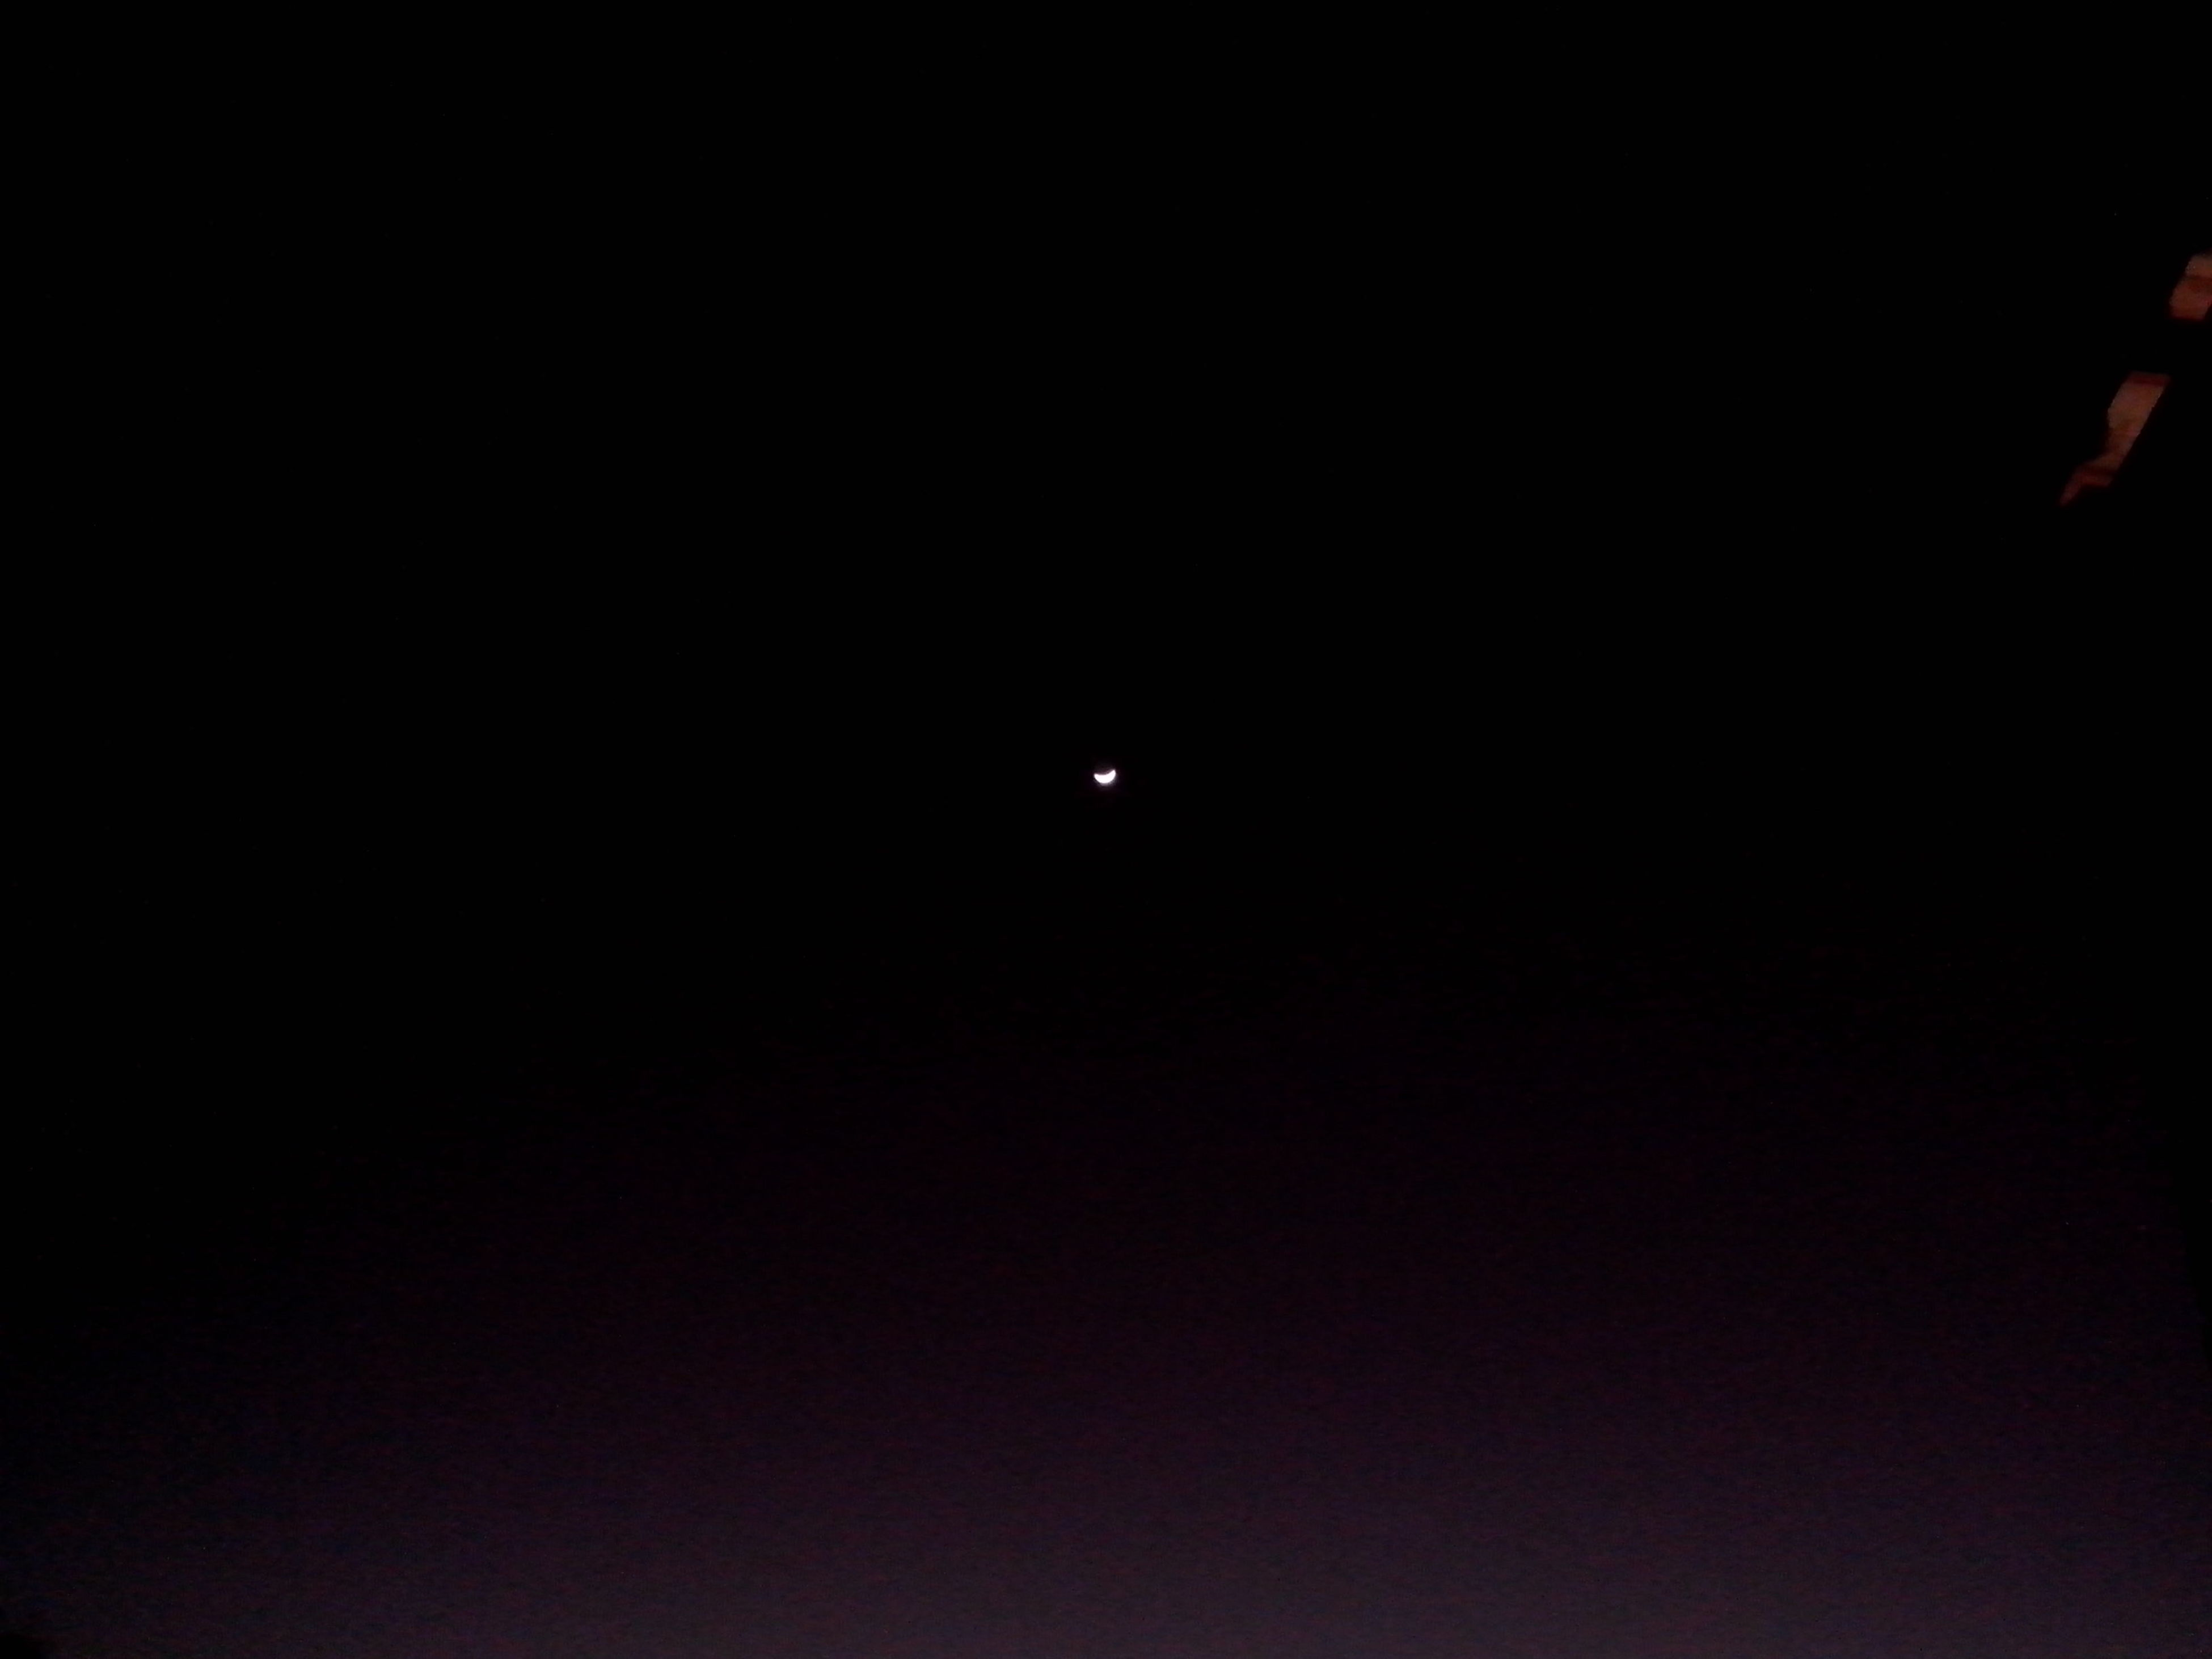 night, copy space, dark, clear sky, moon, low angle view, silhouette, tranquility, tranquil scene, beauty in nature, scenics, nature, illuminated, sky, outdoors, astronomy, no people, idyllic, light - natural phenomenon, mystery